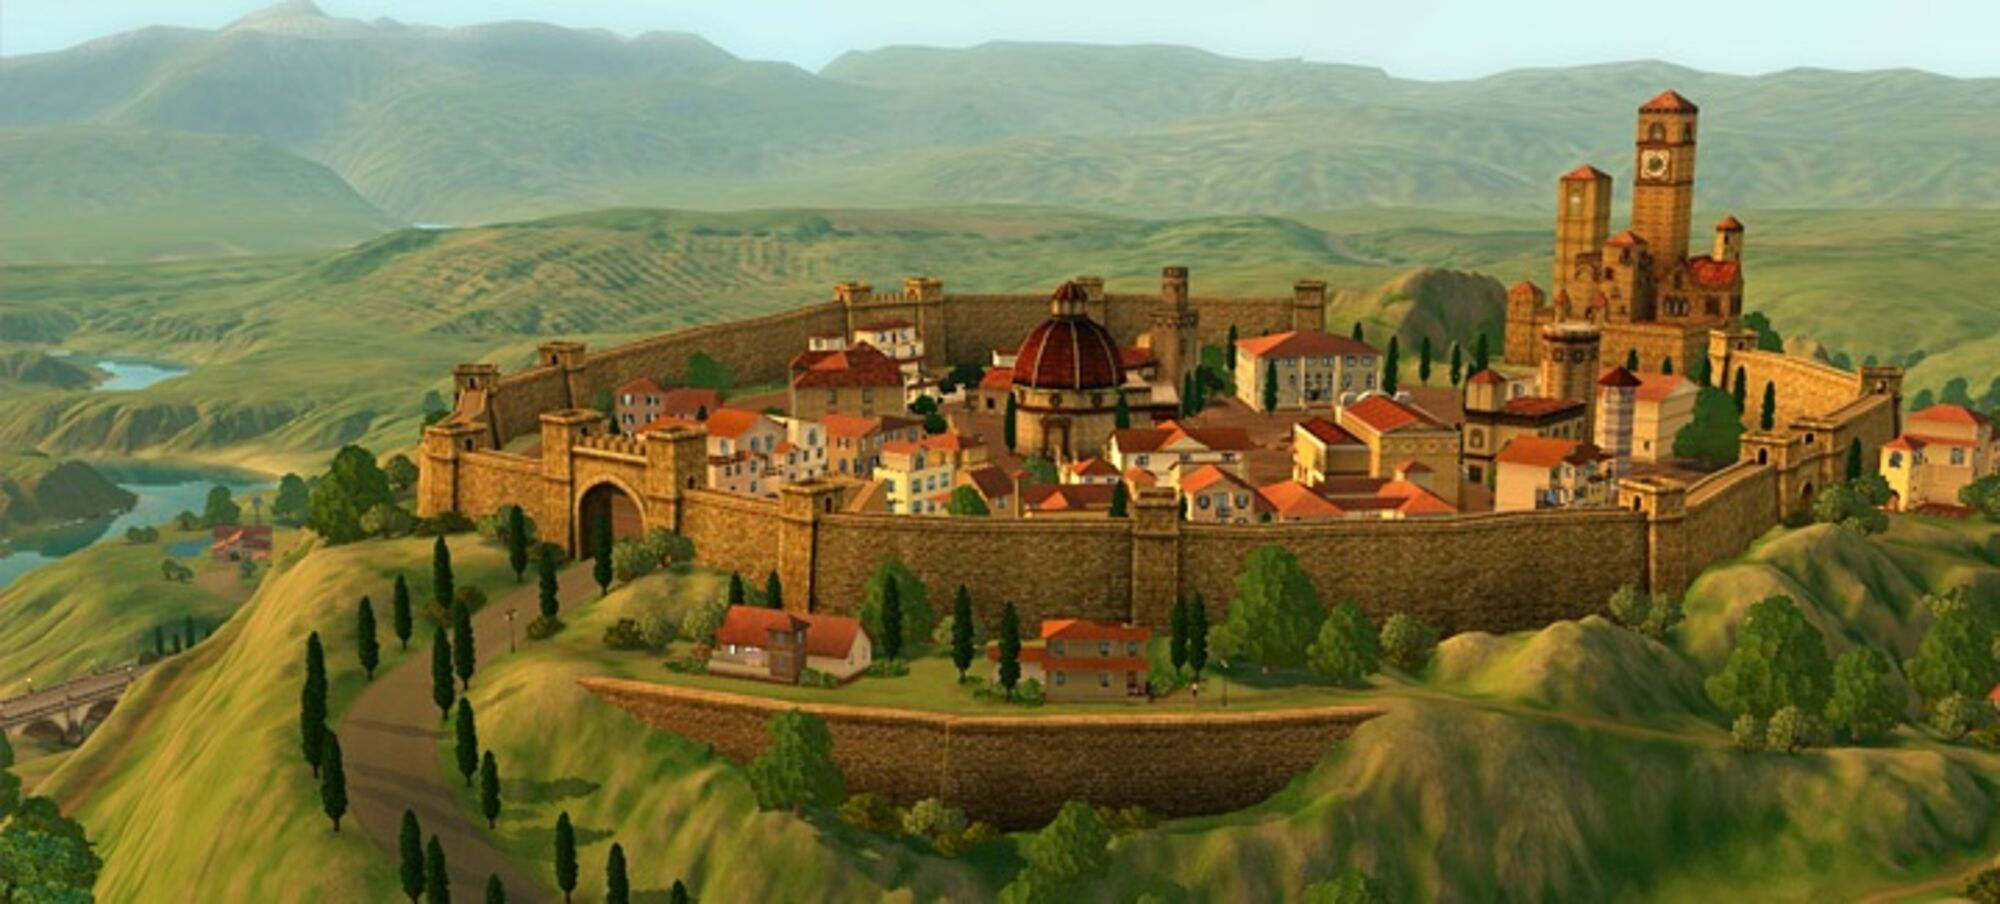 The Sims 3 world: Monte Vista list of lots and houses | The